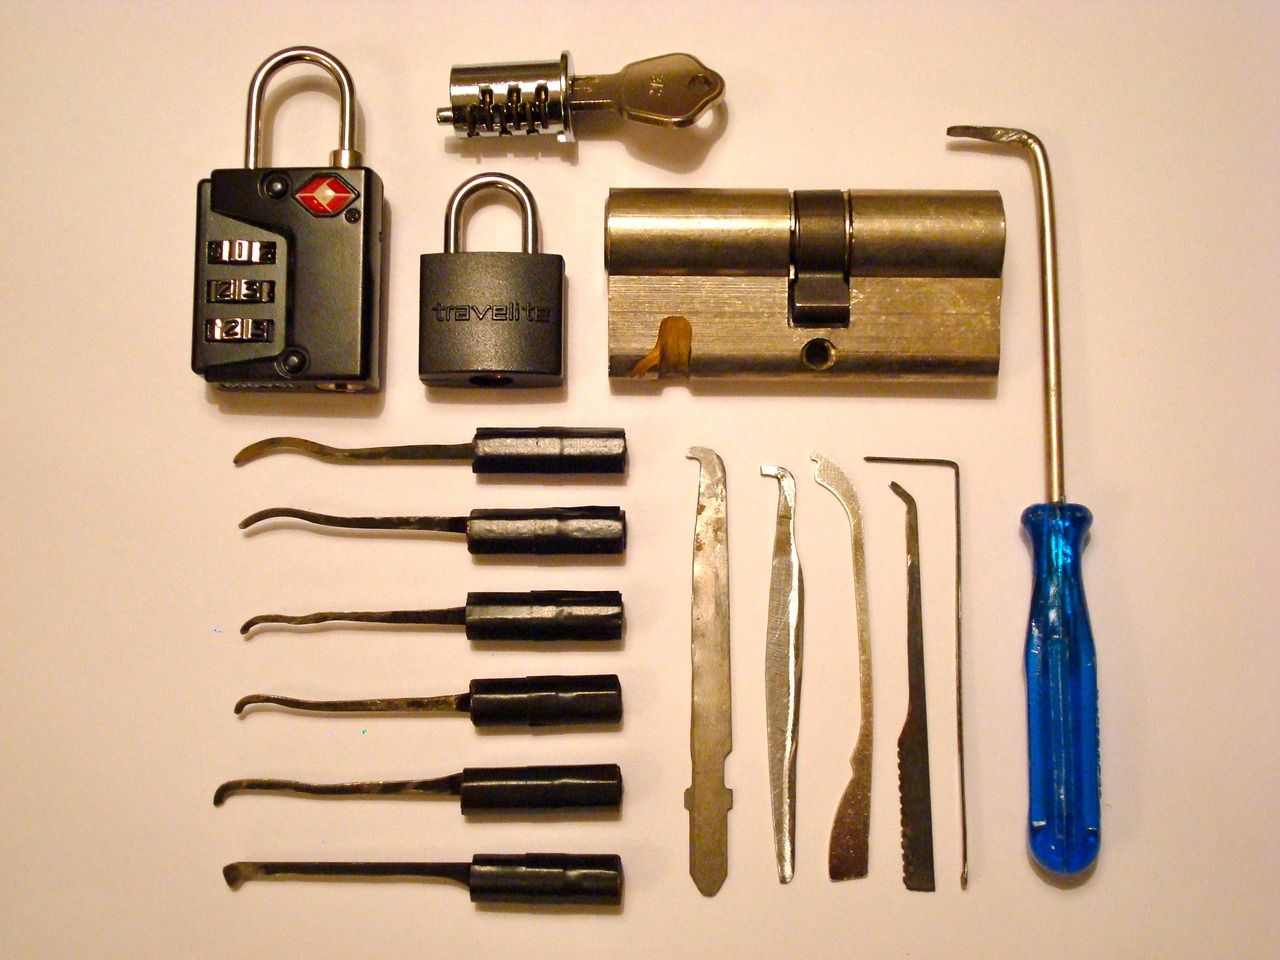 Some Homemade Lock Picking Tools, Submitted In A Photo To (The - Free Printable Lock Pick Templates